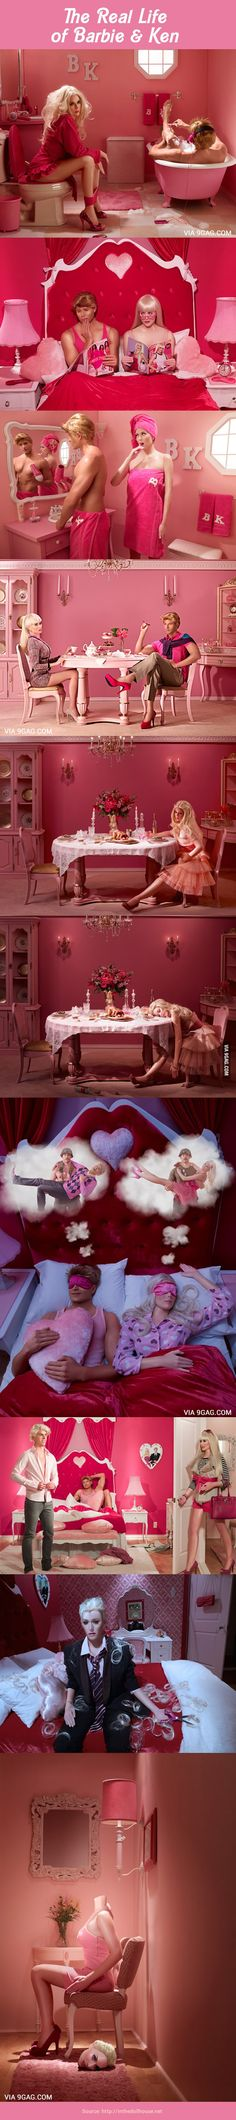 The Real Life Of Barbie And Ken